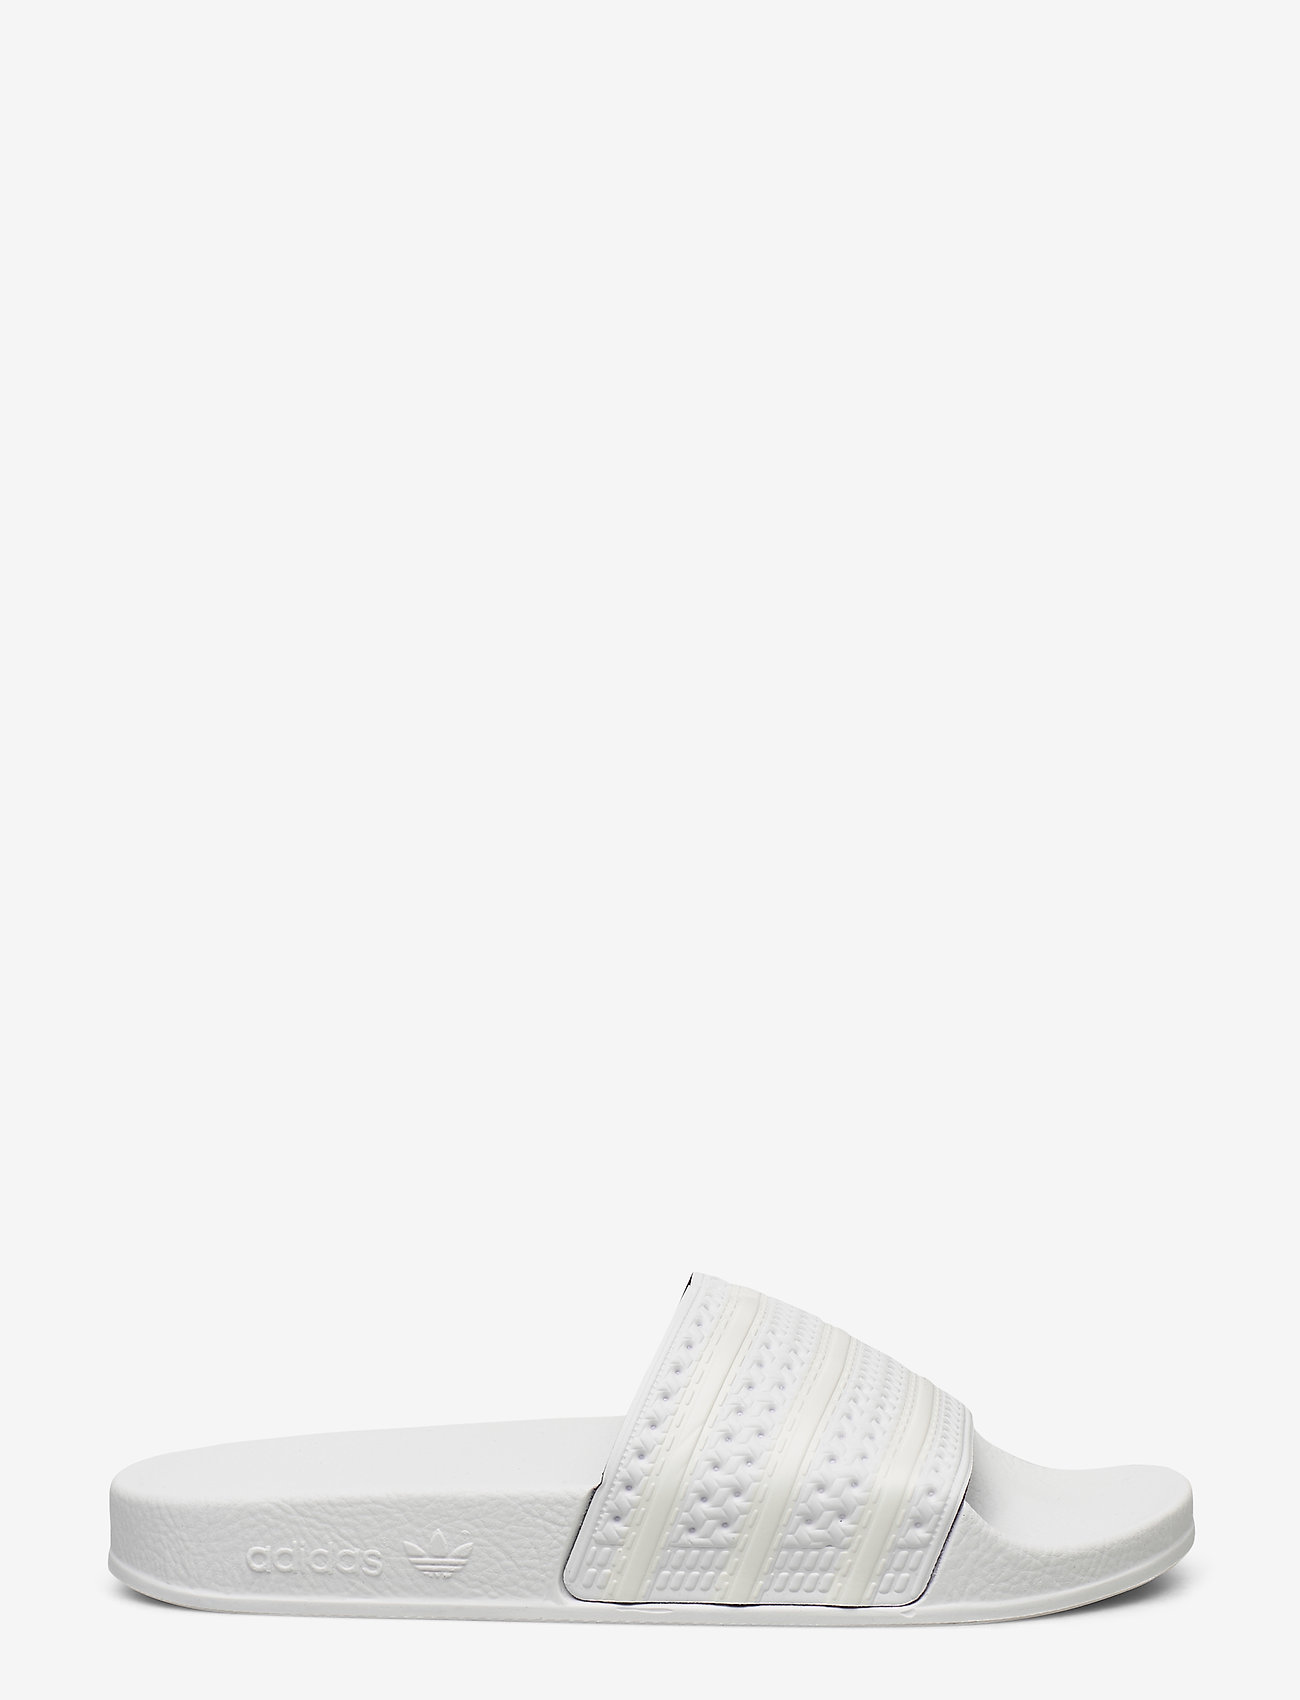 adidas Originals - ADILETTE W - sneakers - ftwwht/owhite/ftwwht - 1